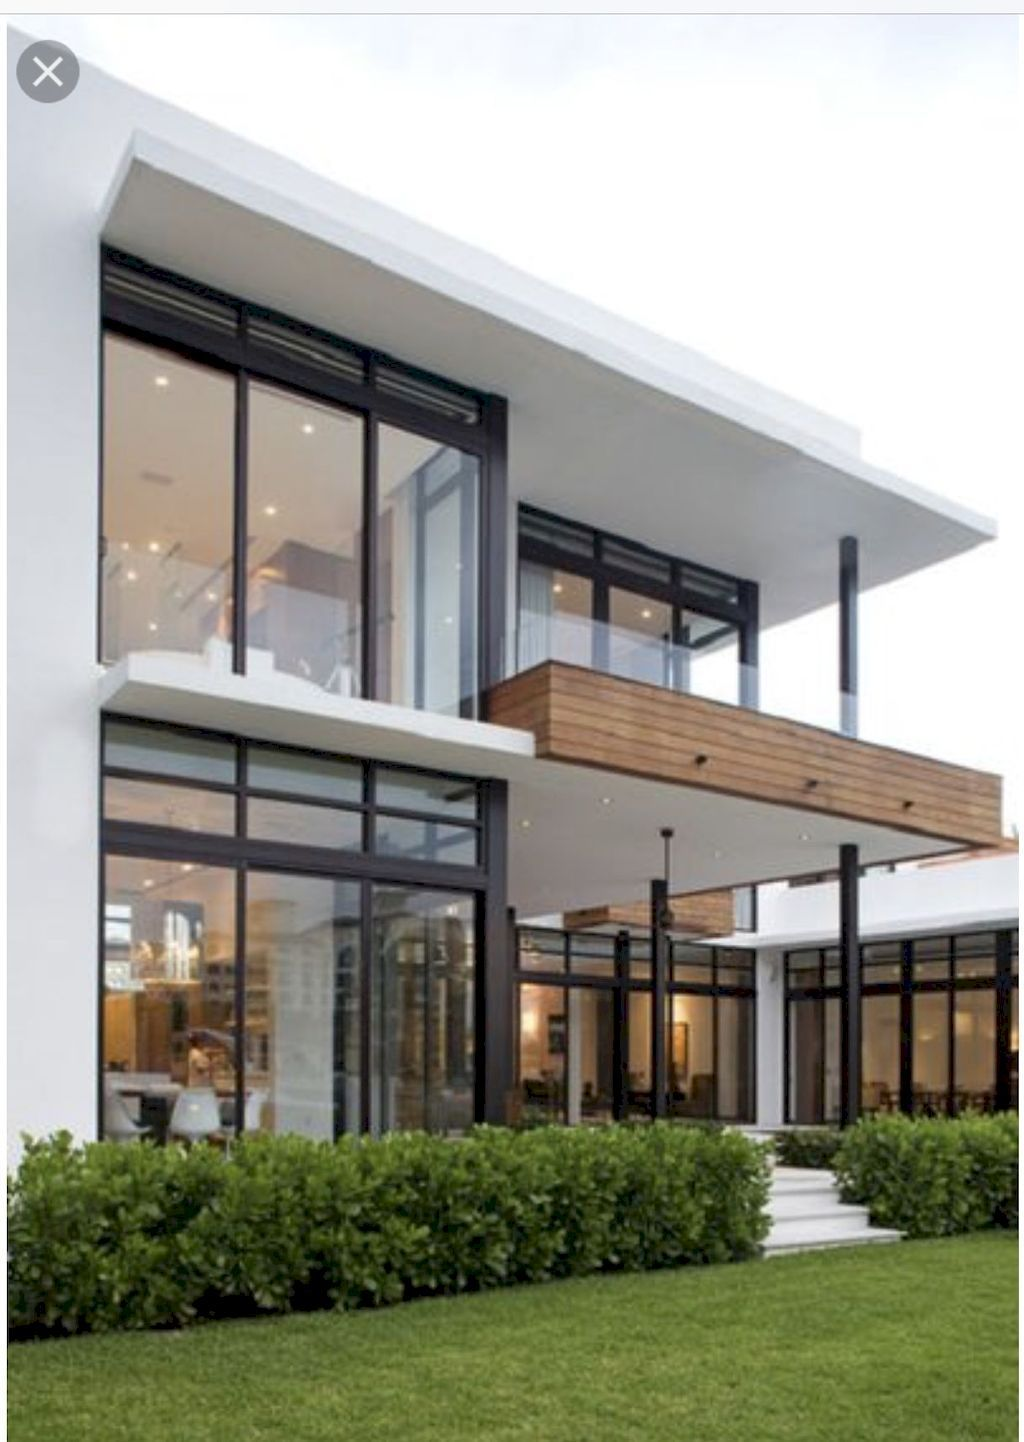 Big windows that welcome the light franco residence by kz architecture also holland house design hiqra pinterest rh